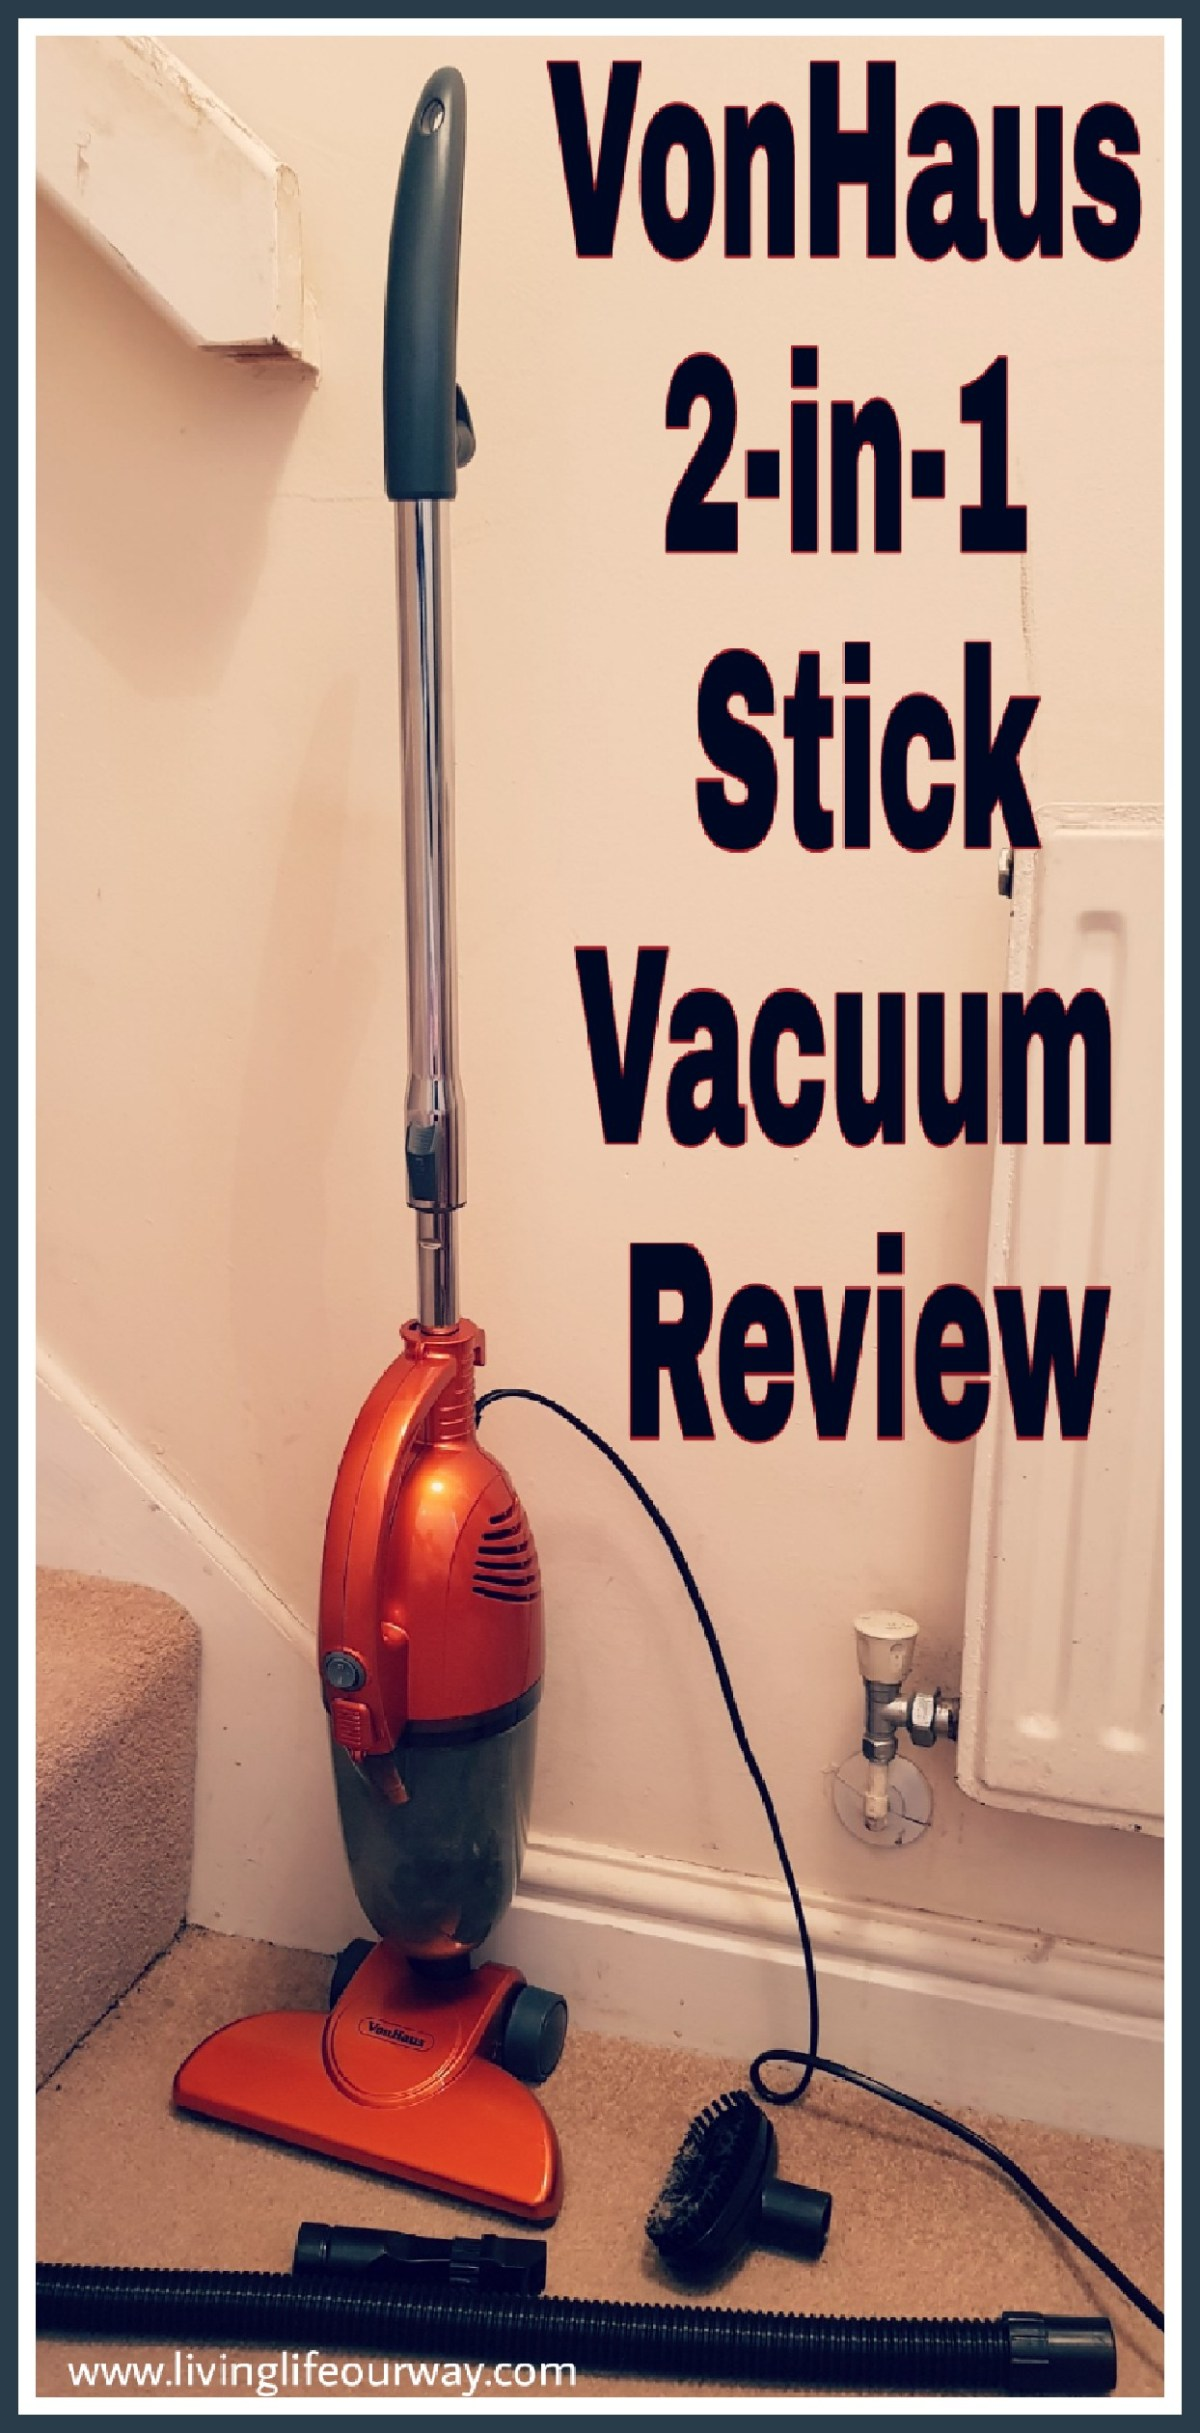 VonHaus 2 in 1 Stick Vacuum: Review